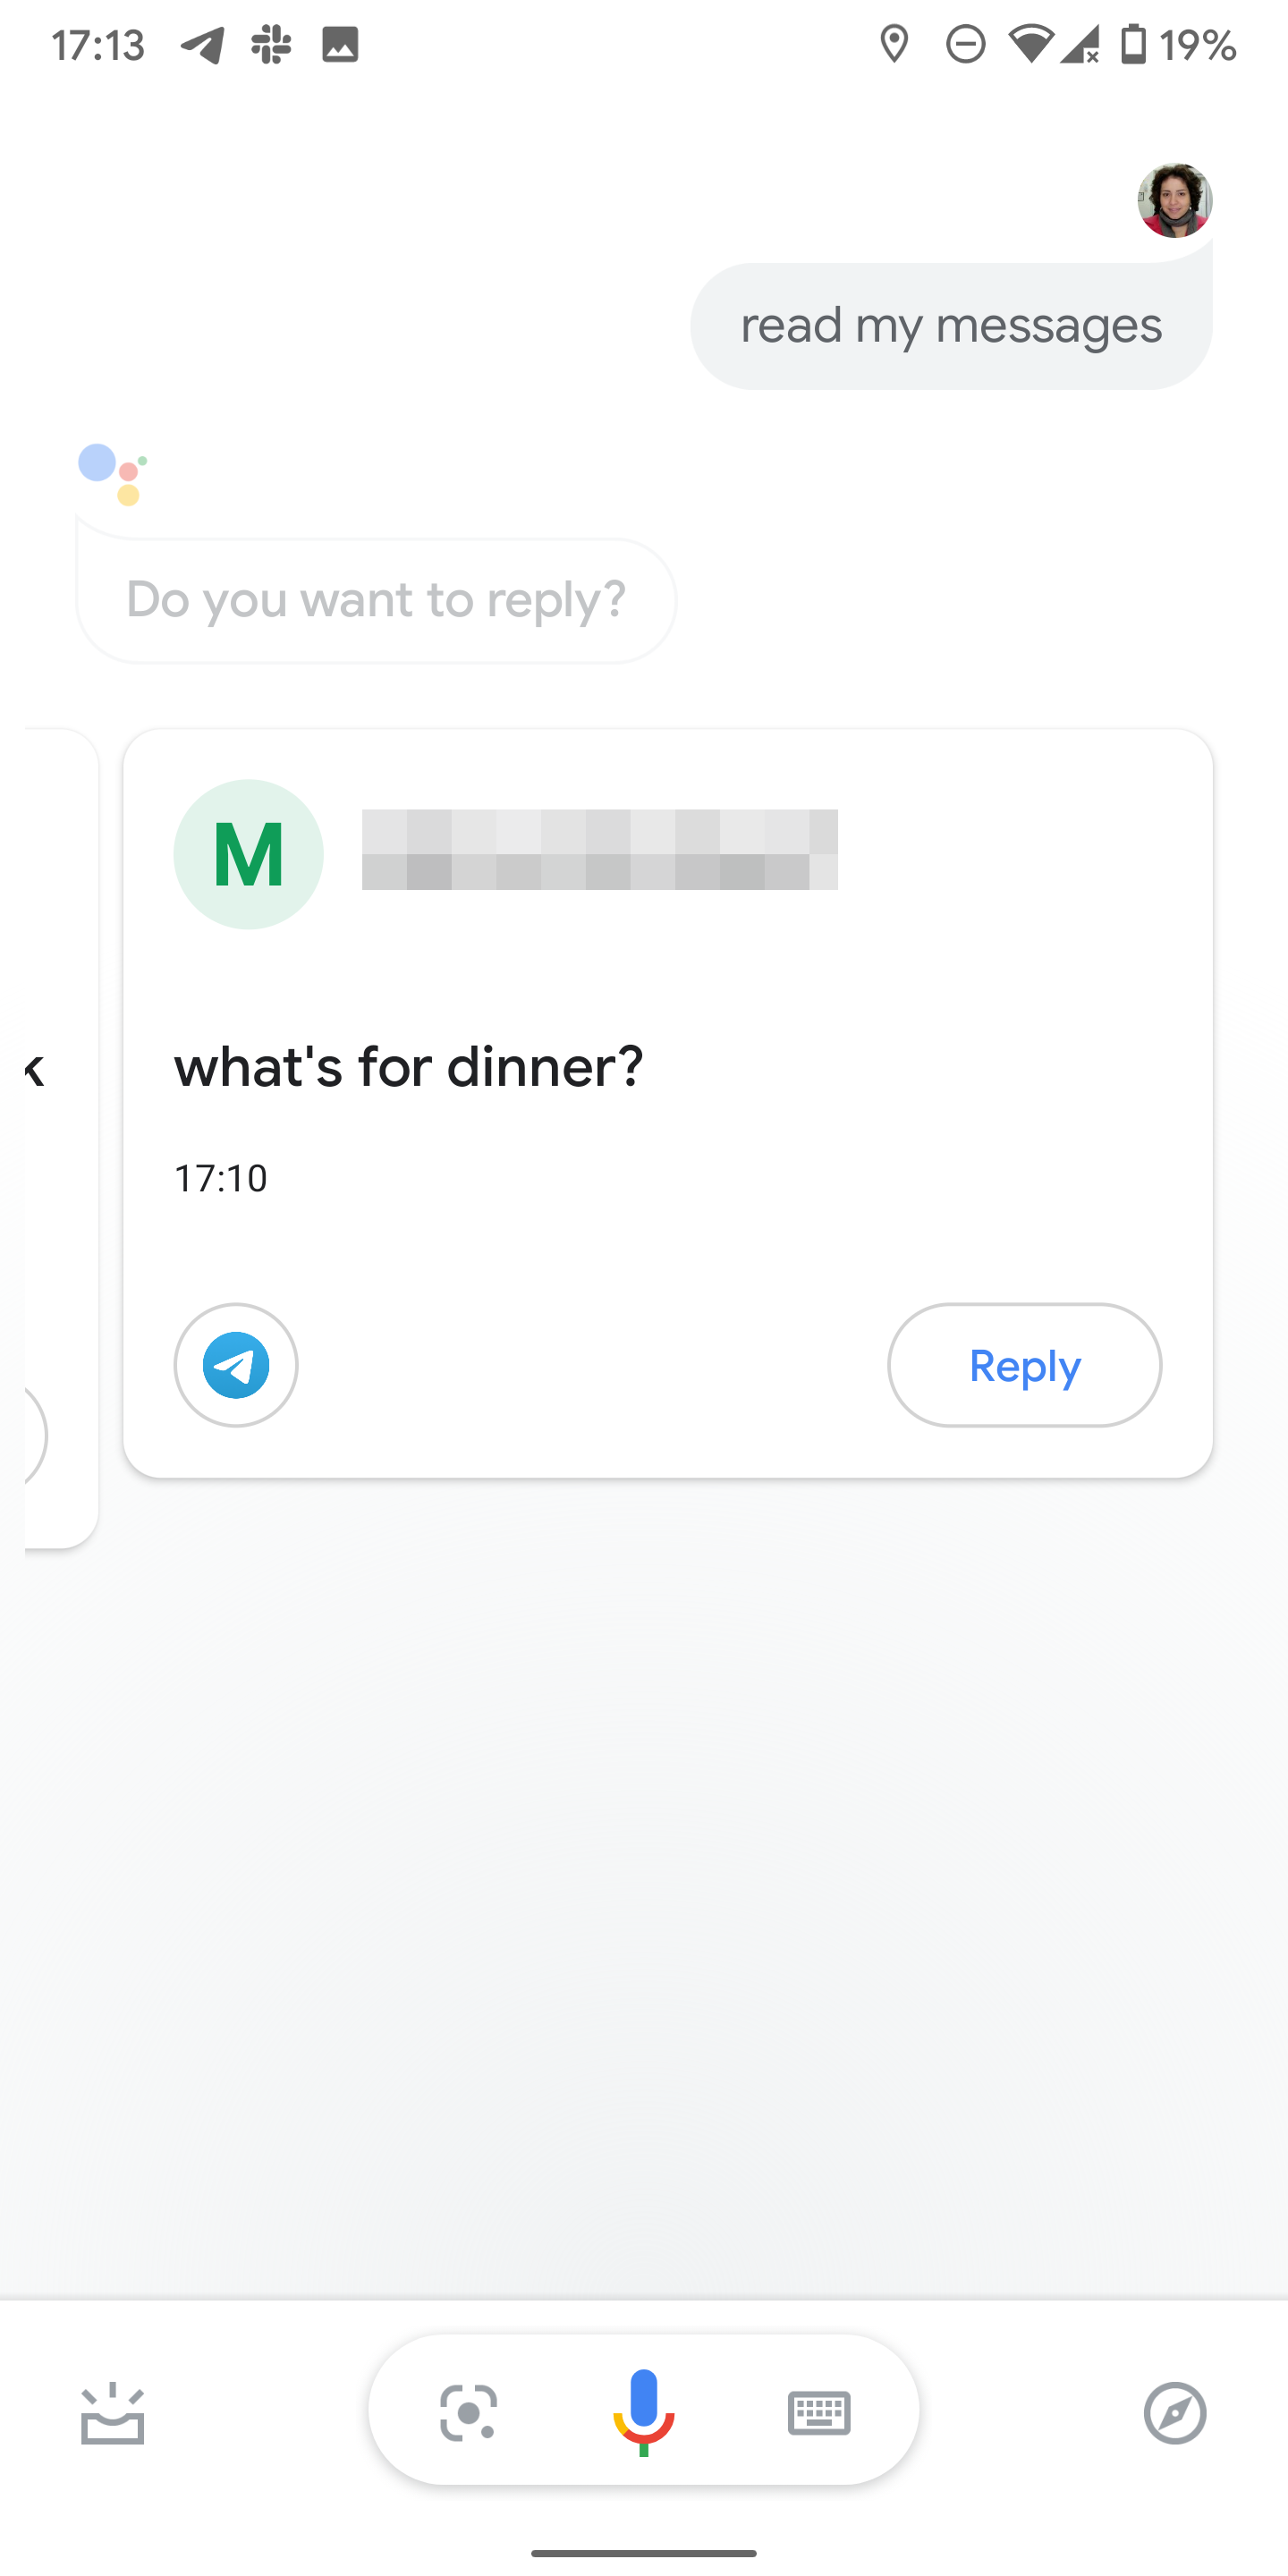 Google Assistant can now read and reply to messages from WhatsApp